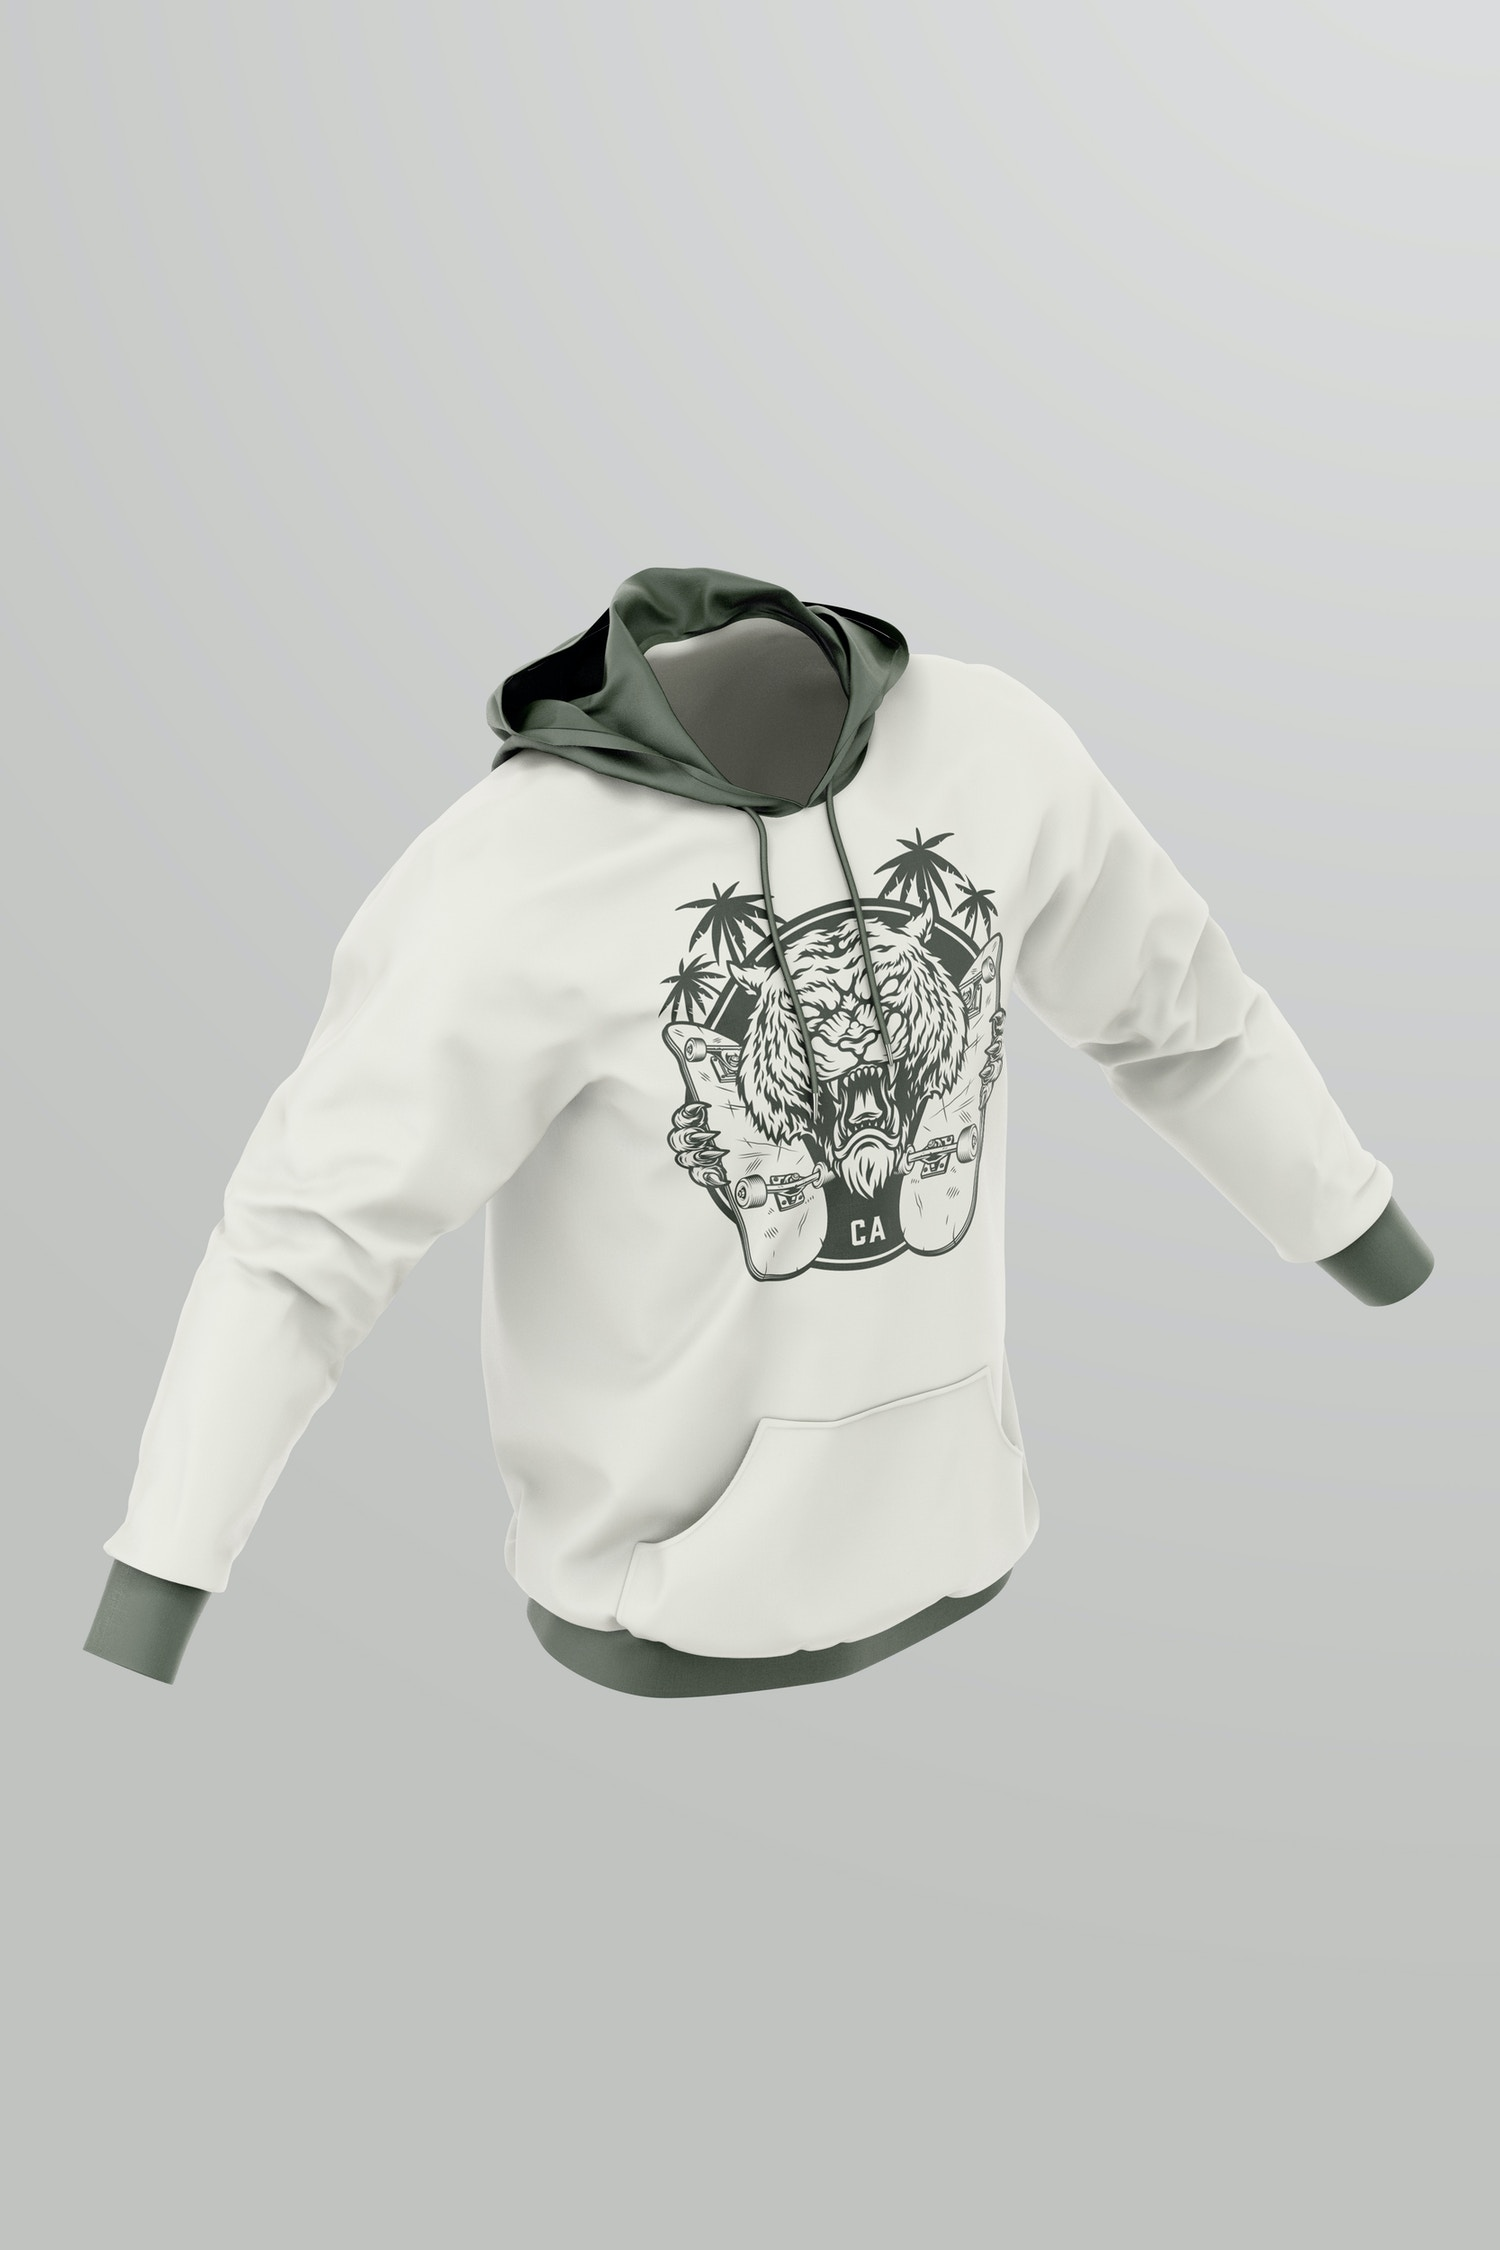 Hoodie Mockup, Isometric Right View